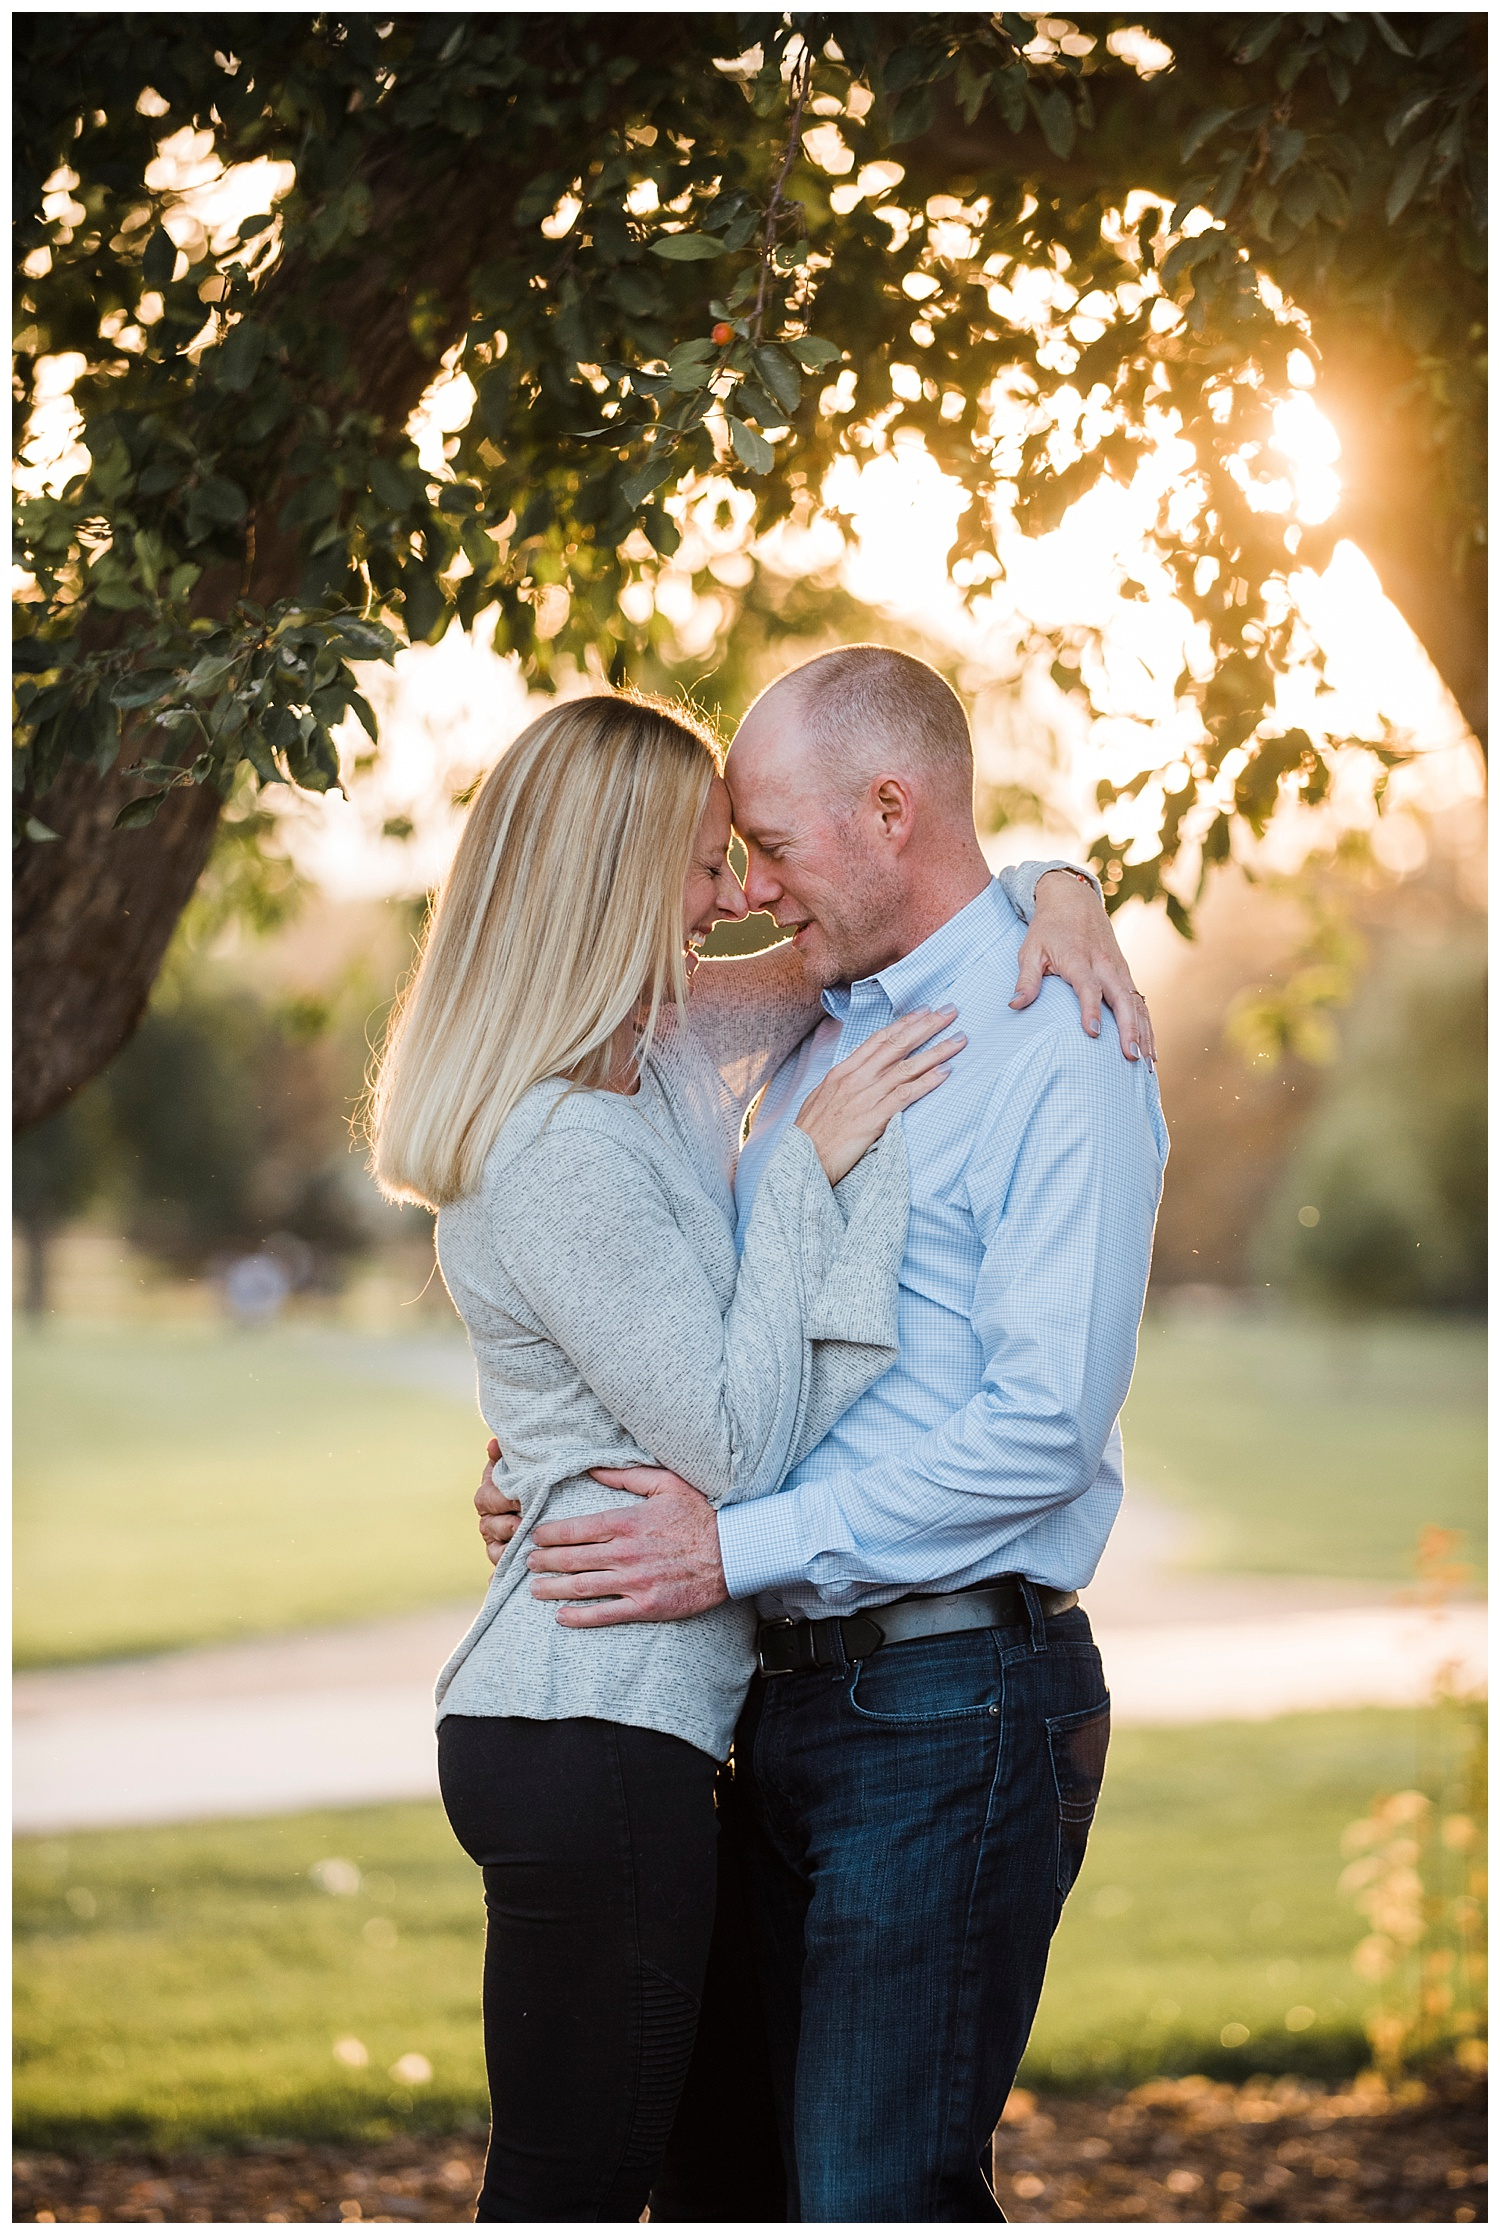 City_Park_Denver_Colorado_Engagement_Session_Apollo_Fields_Weddings_005.jpg